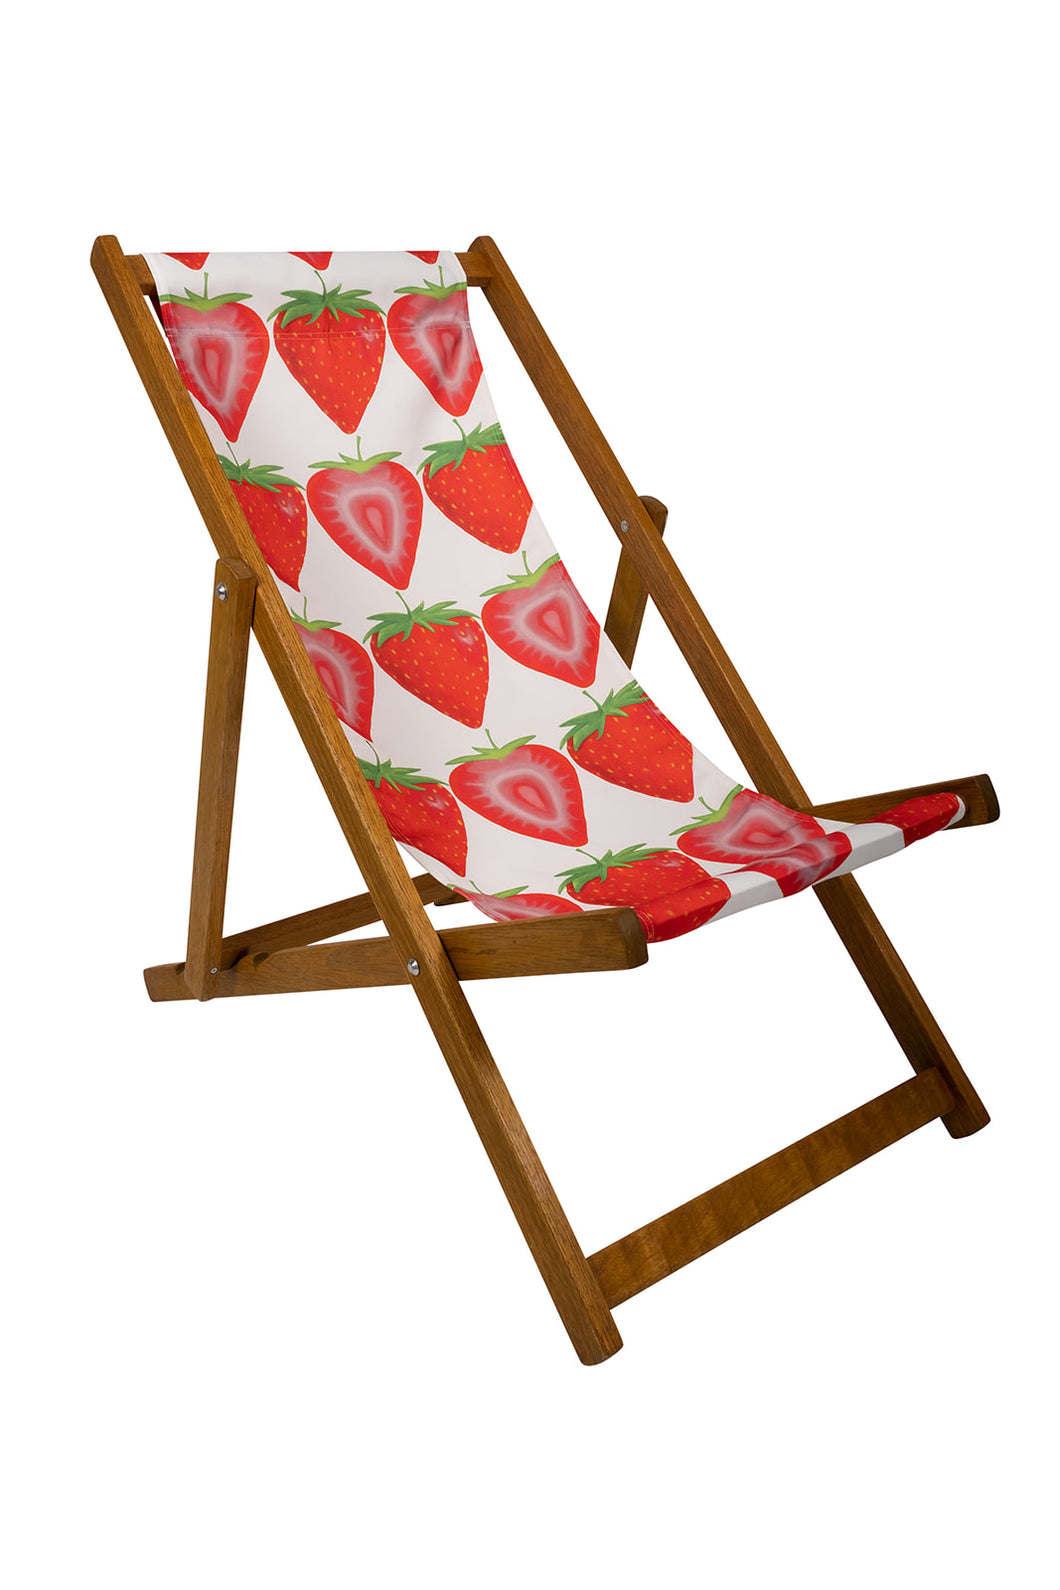 Strawberry Deck Chair